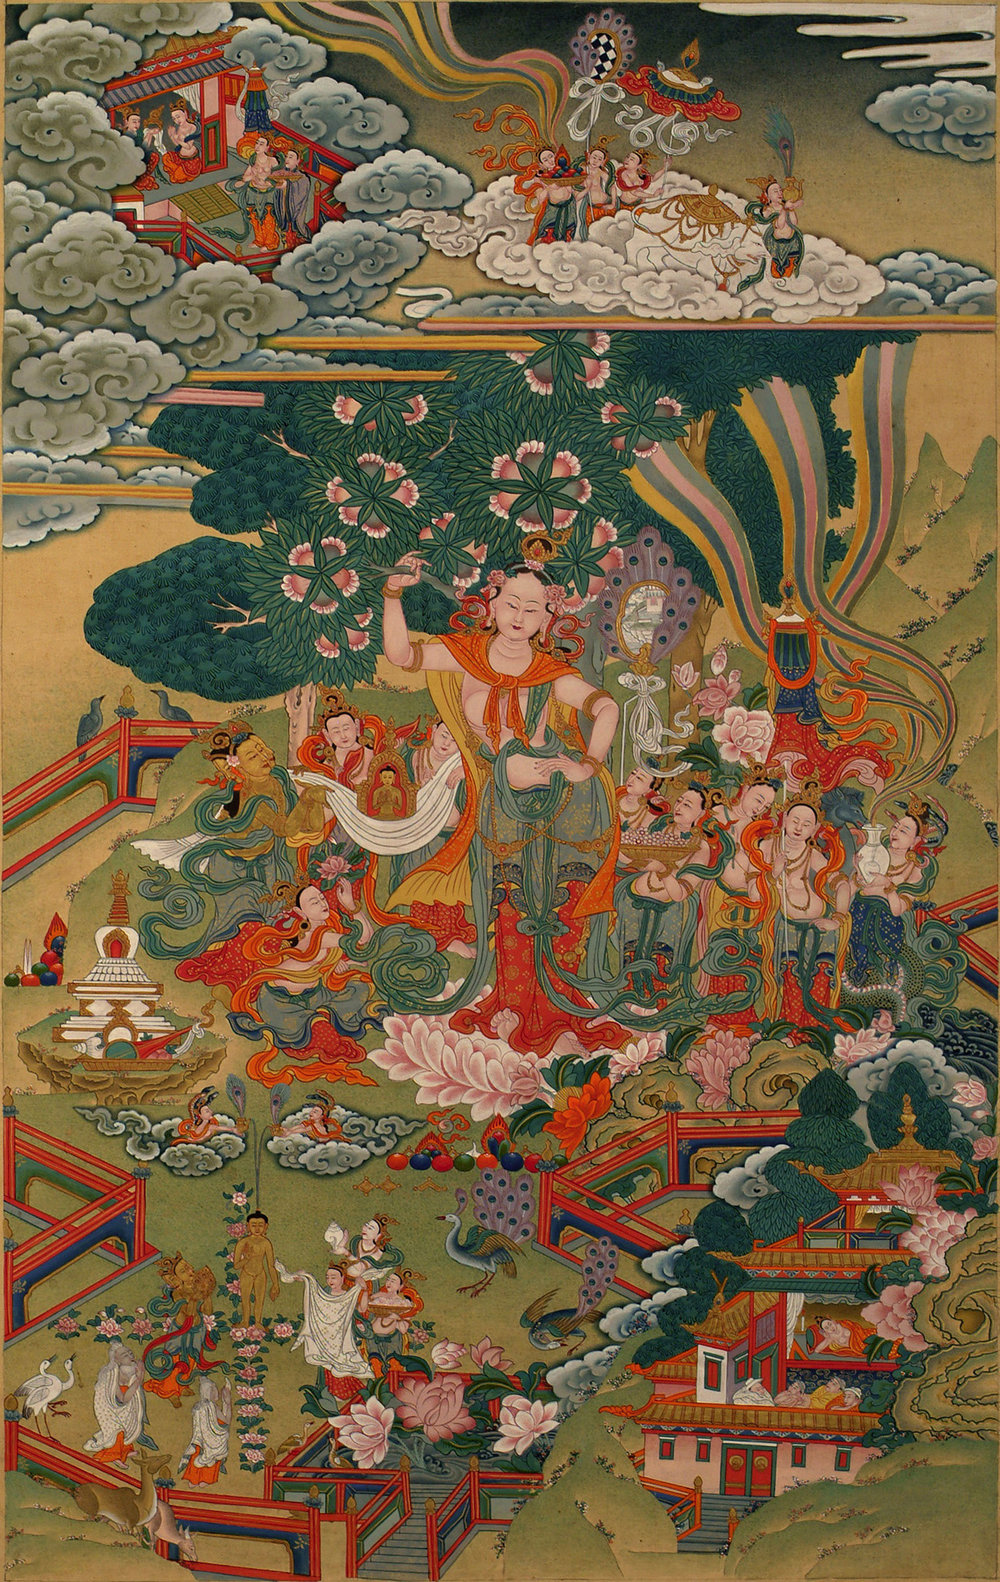 The Birth of Buddha